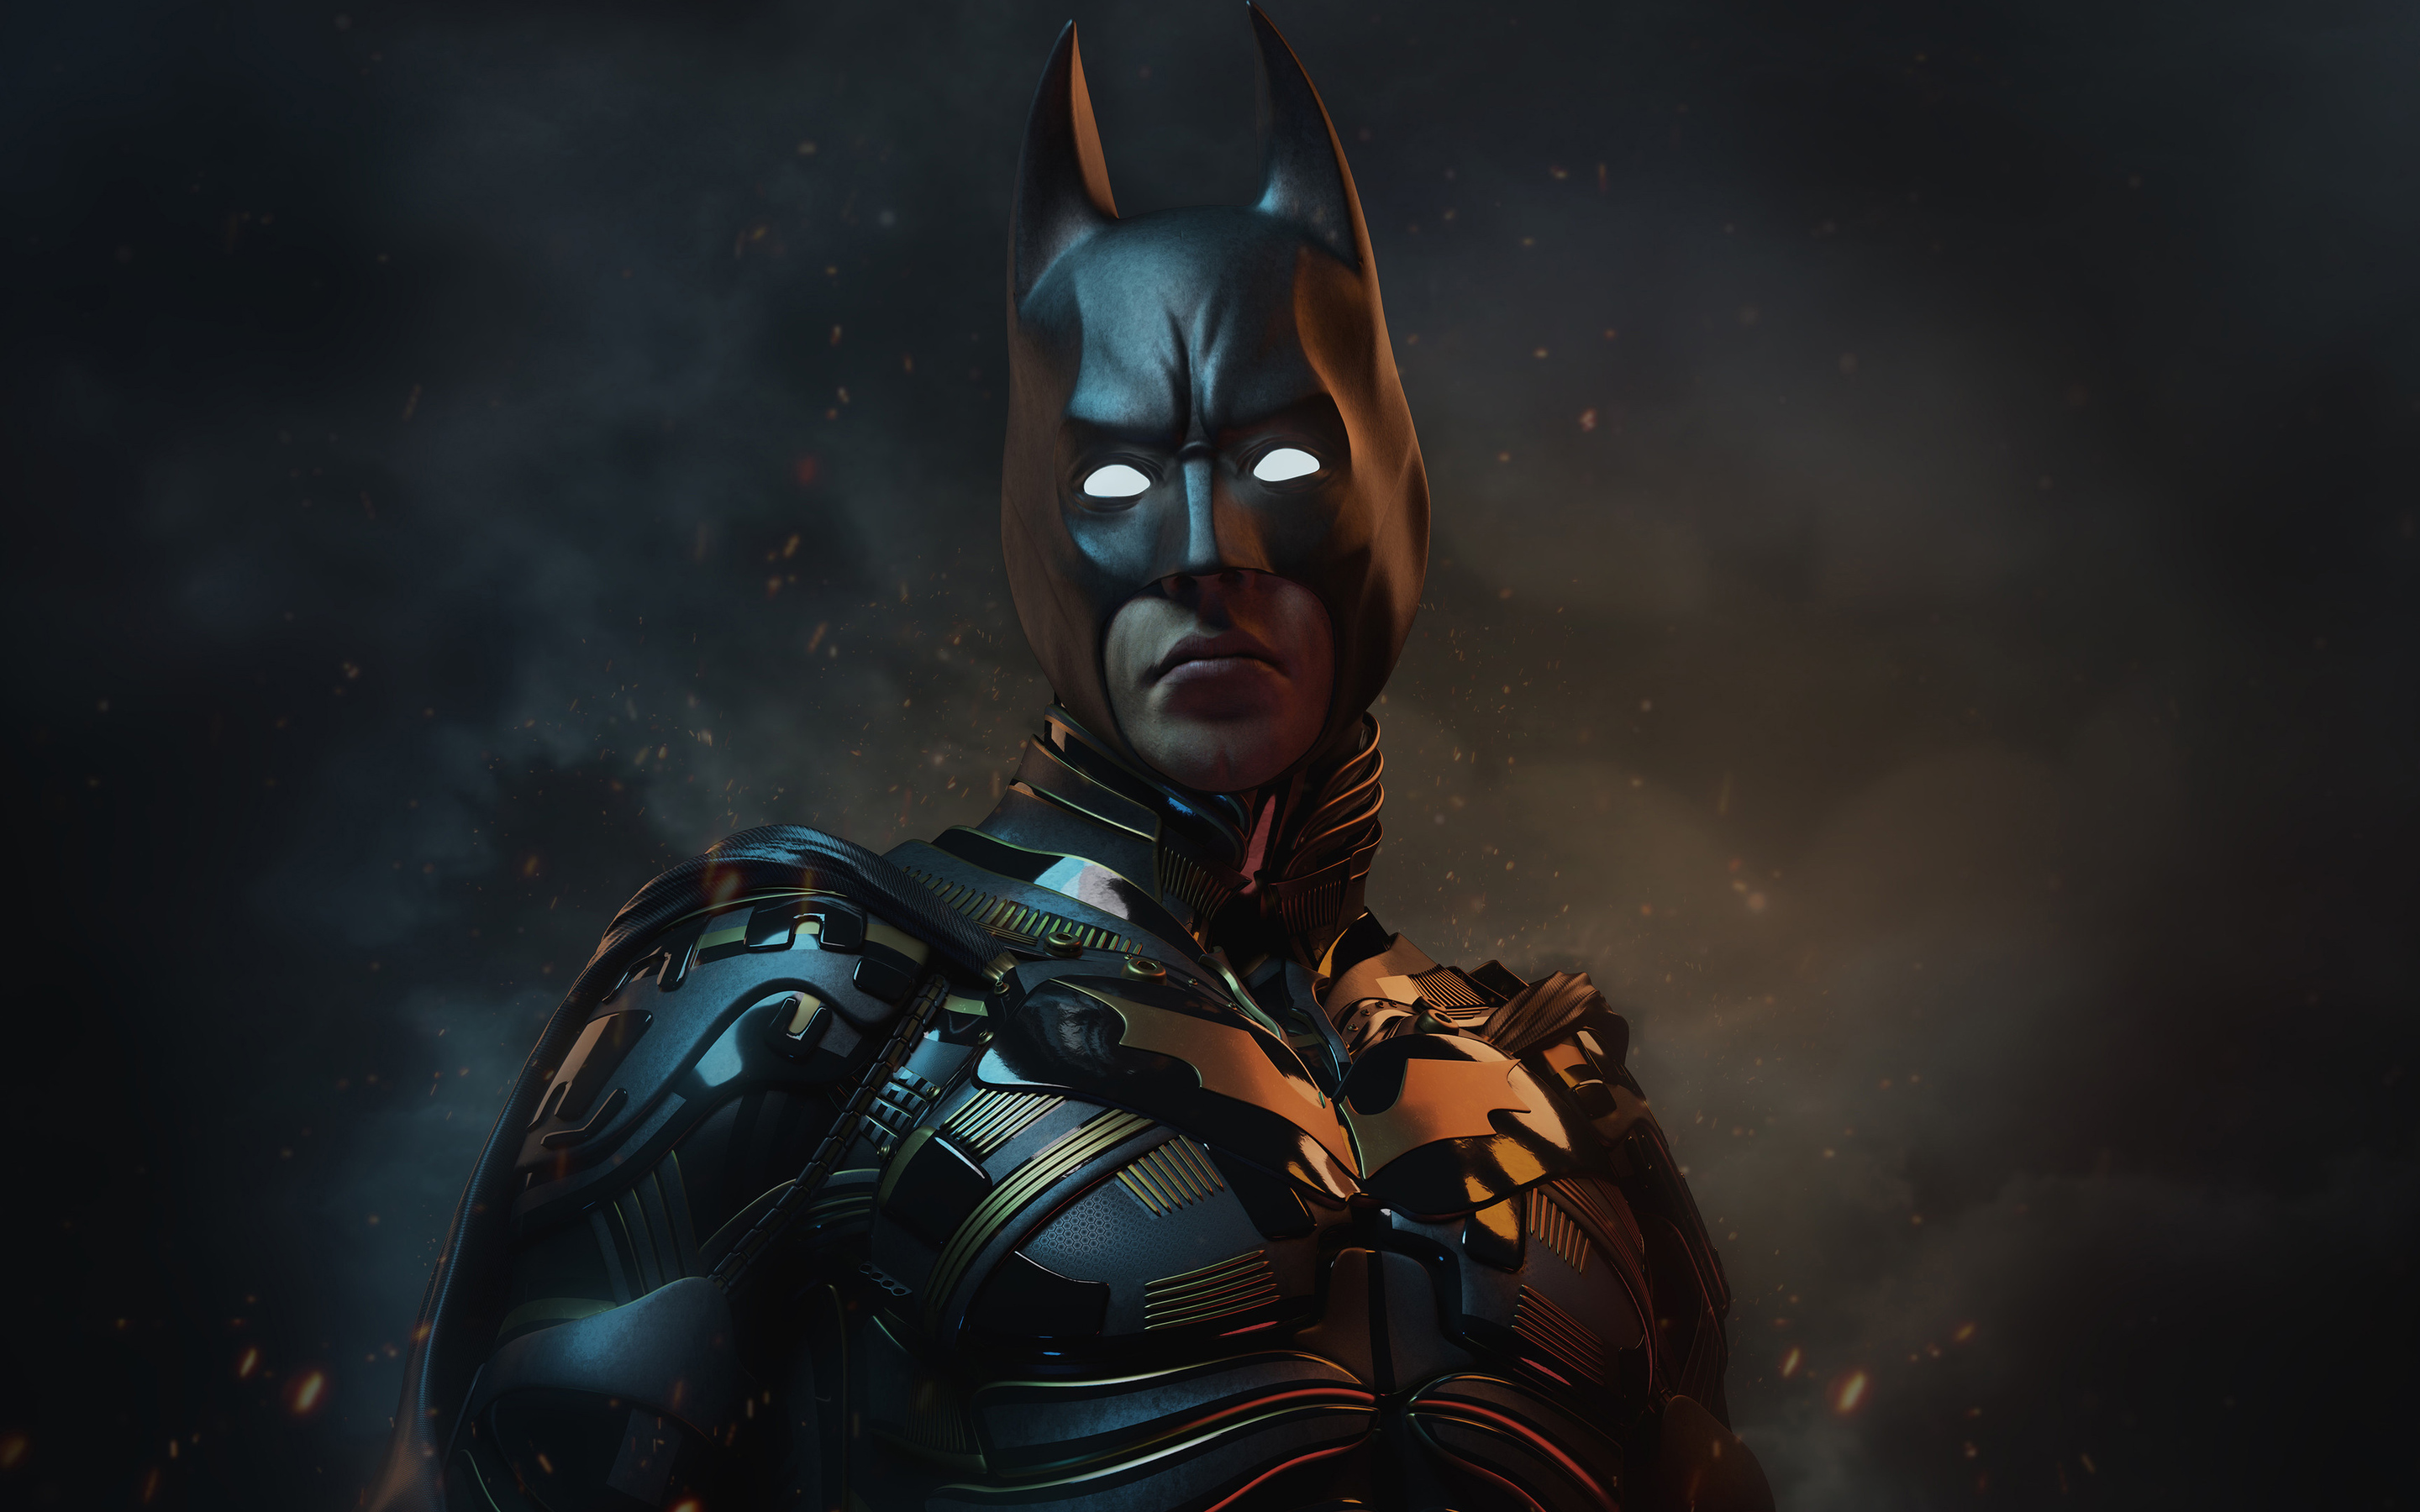 batman-as-christian-bale-4k-2i.jpg